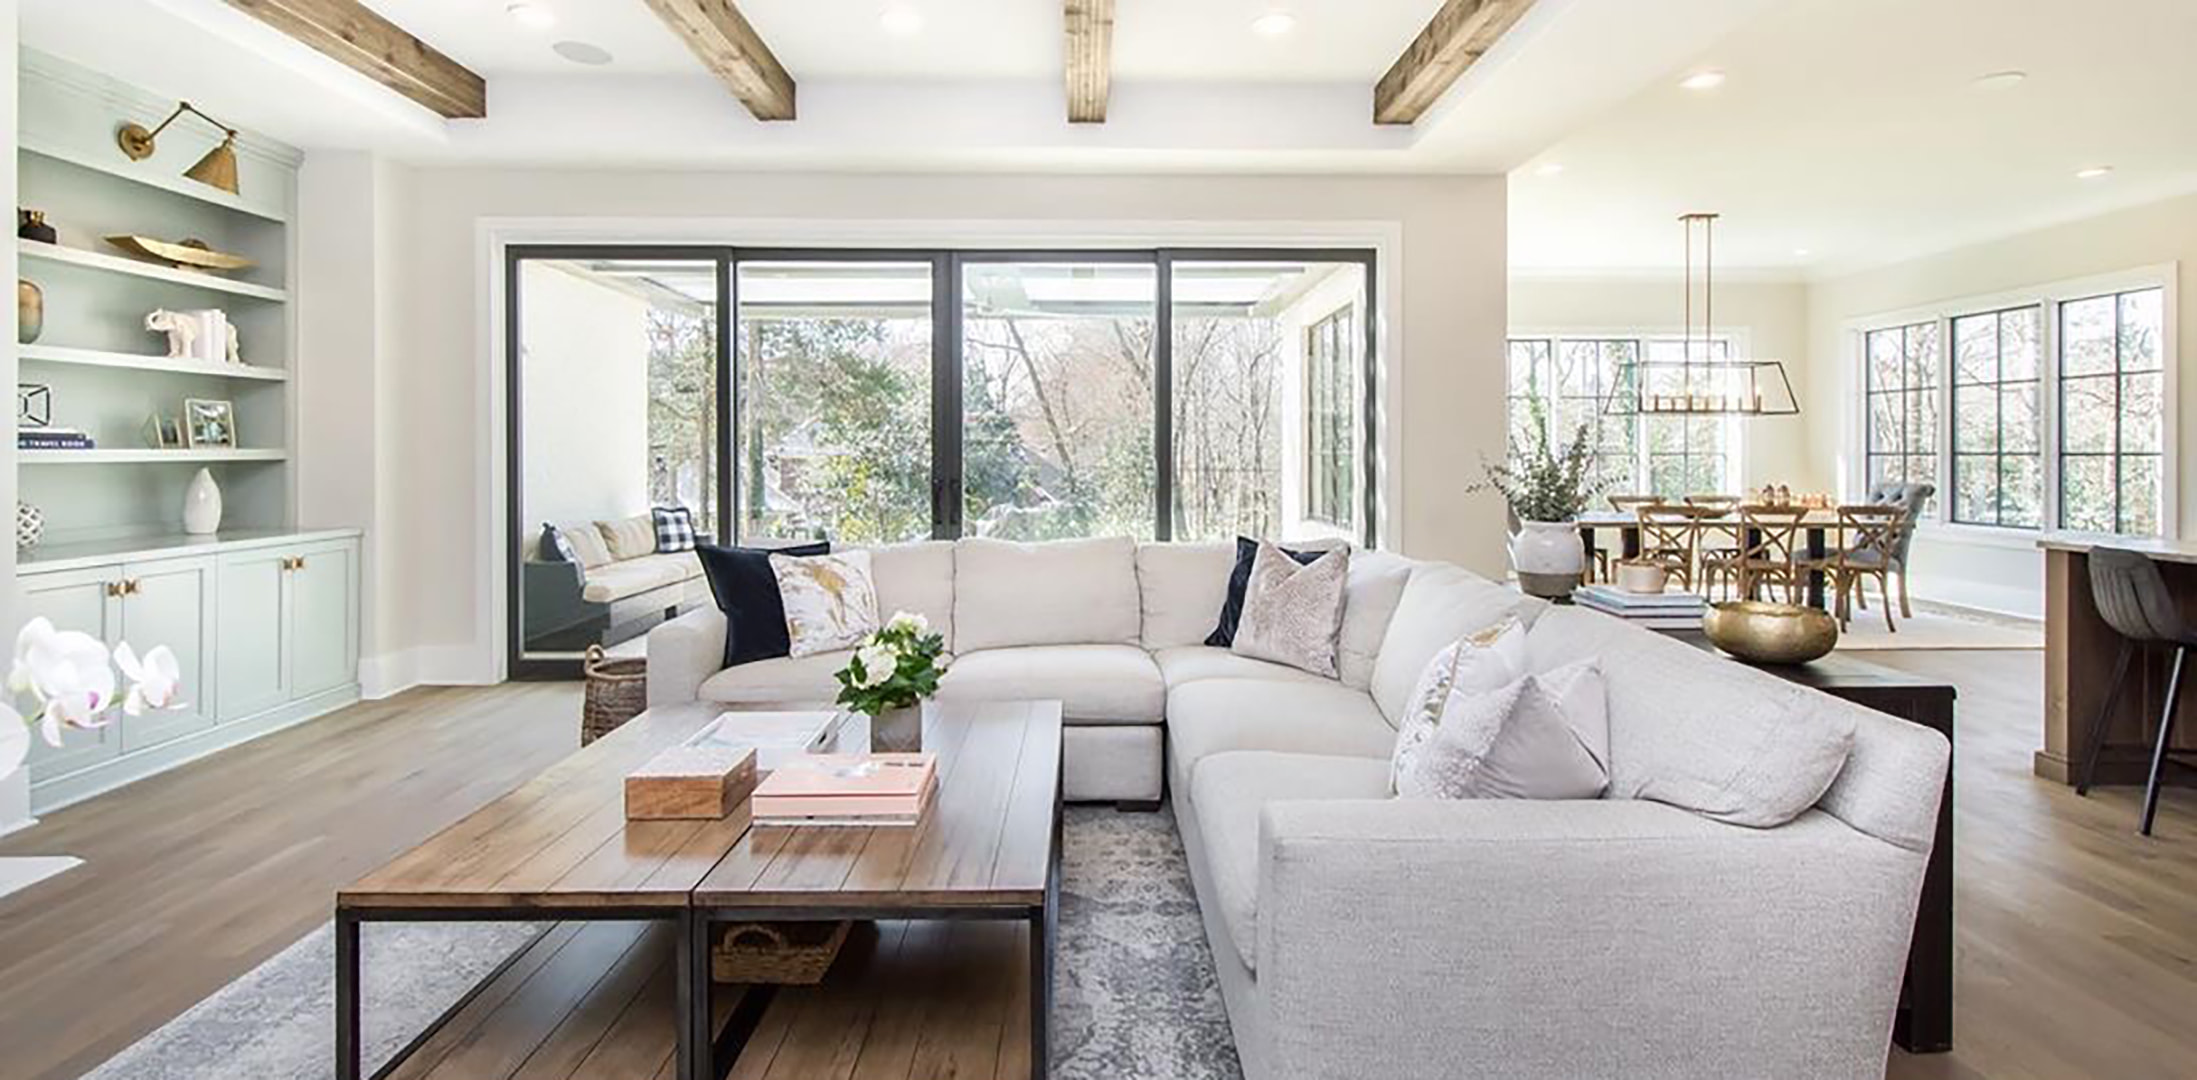 A cozy open floor plan home features a wall of black sliding patio doors connecting the living room with outdoor seating.